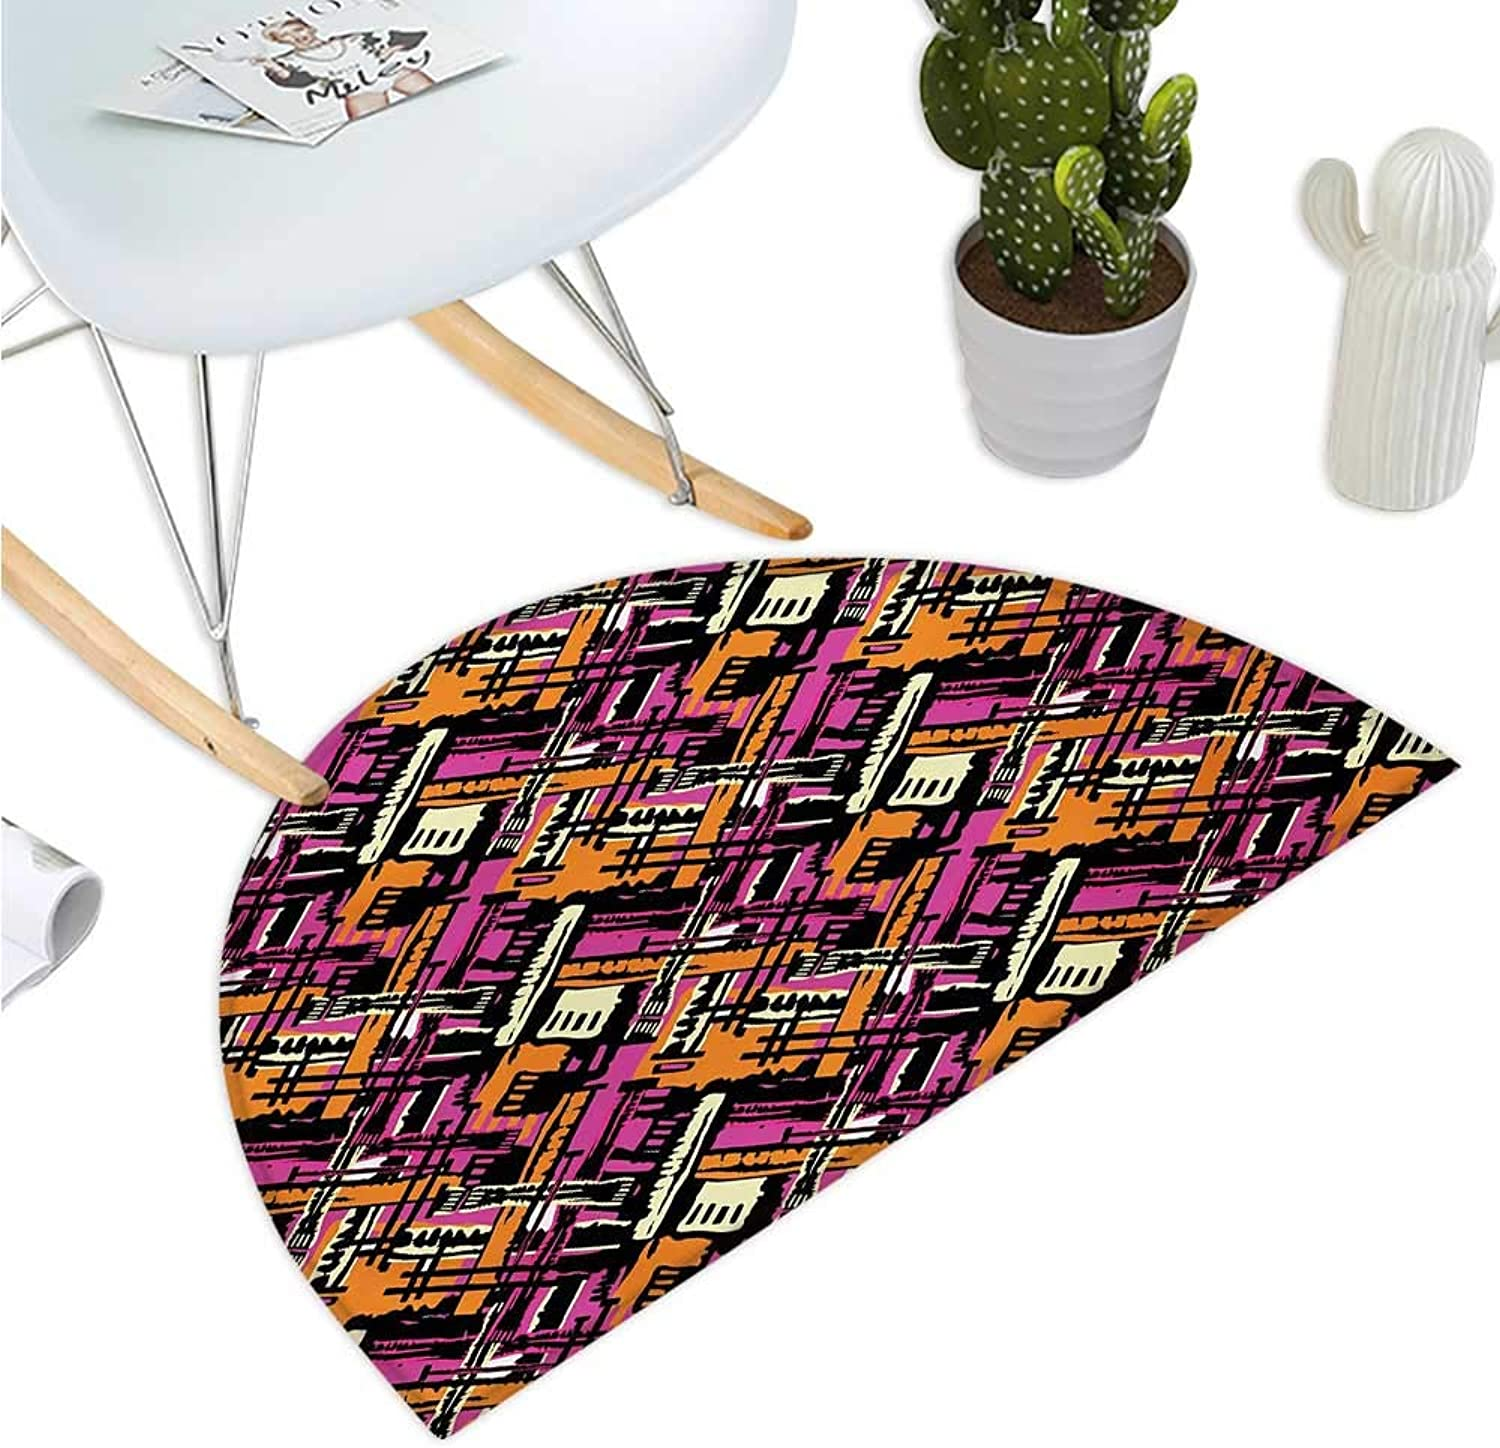 Grunge Half Round Door mats Modern Pattern with Artistic Creativity Theme Hand Painted Style Lines Vivid colors Bathroom Mat H 43.3  xD 64.9  Multicolor